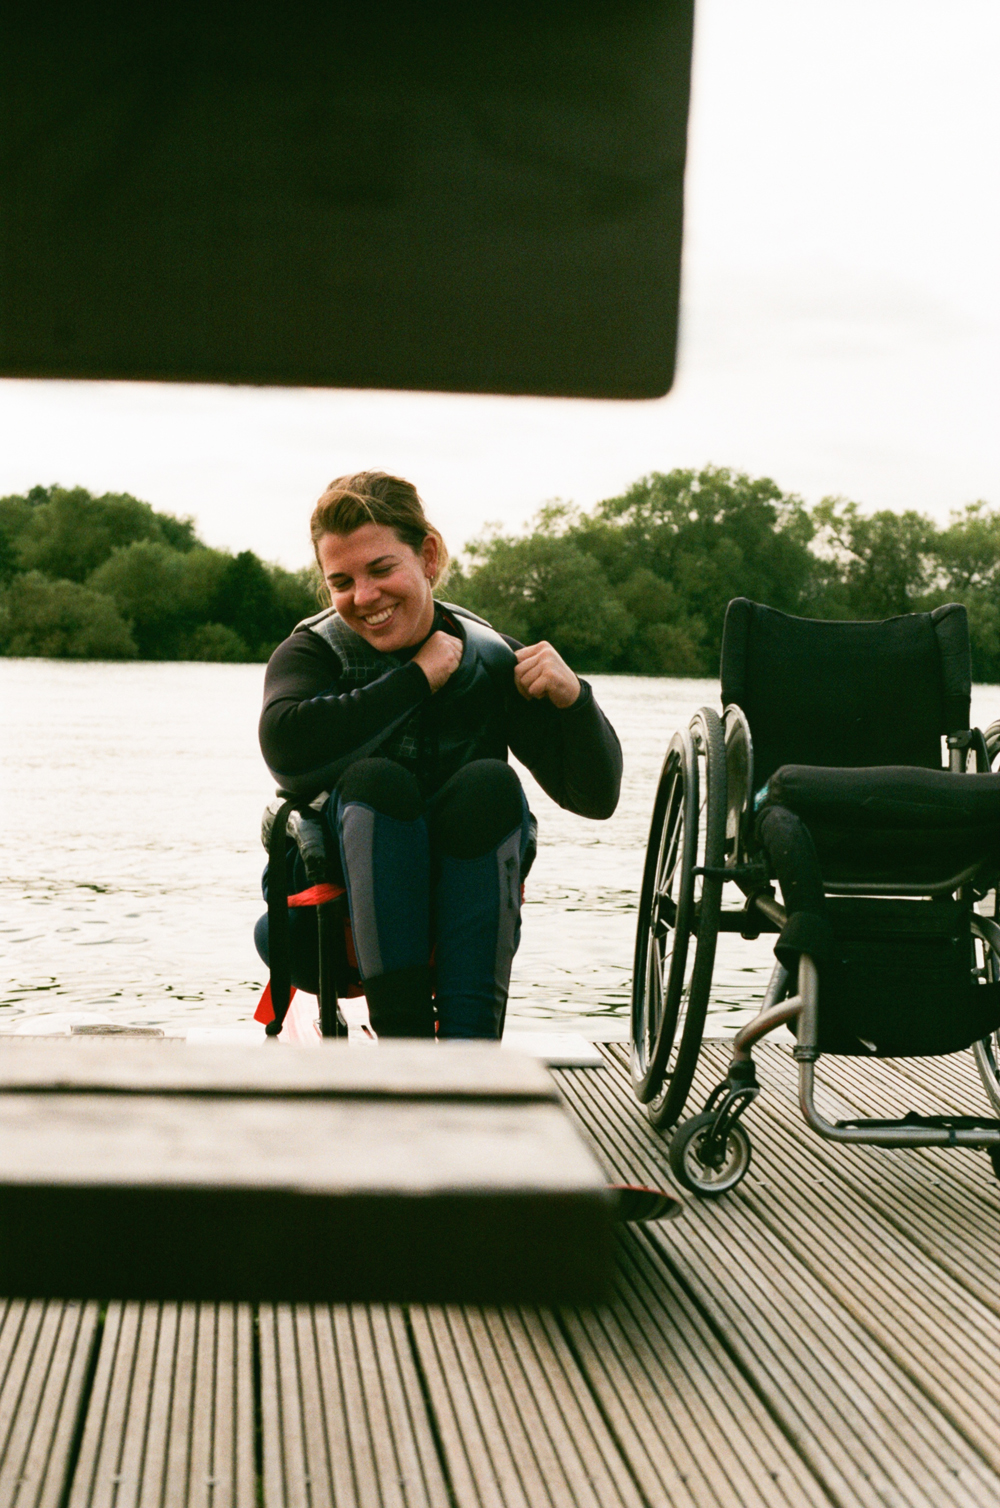 Sophie Disability wake-boarding